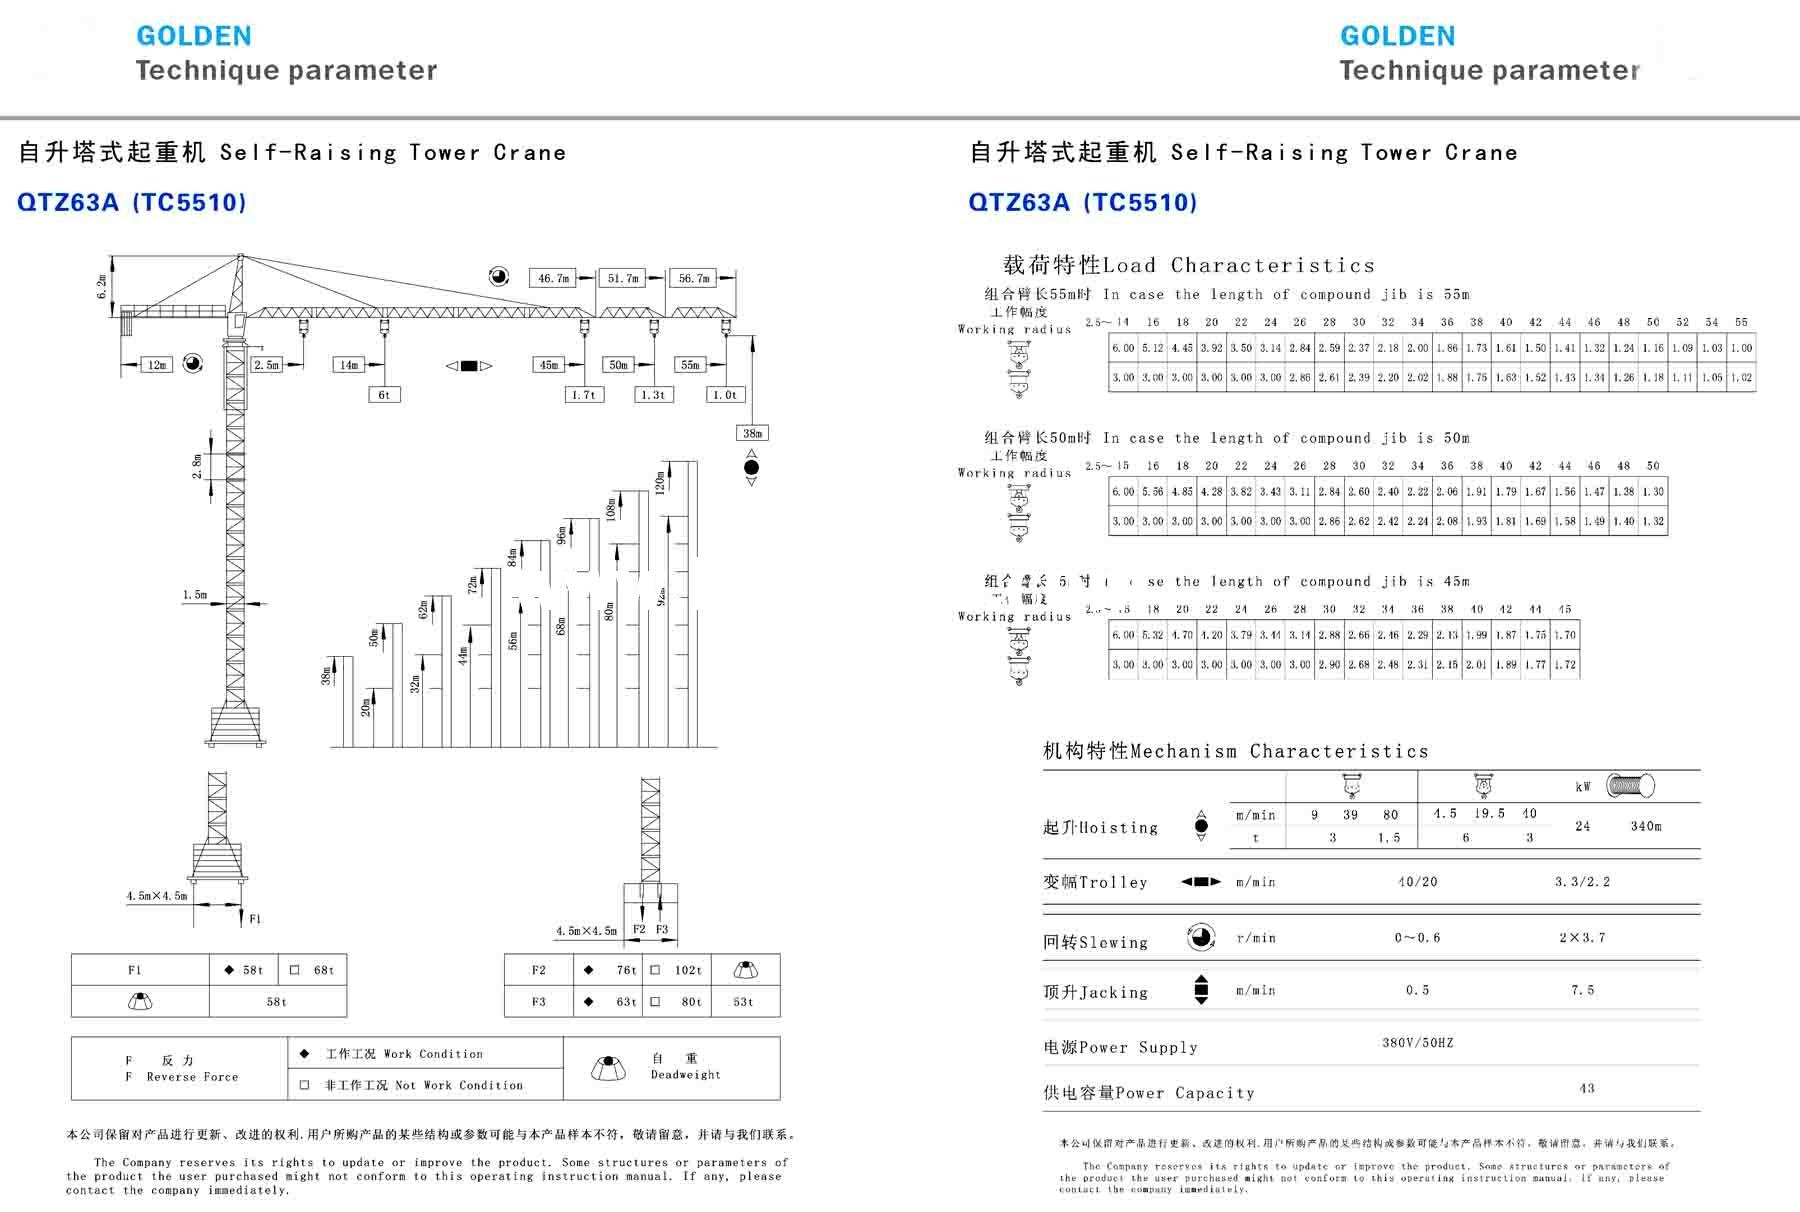 Golden tower crane model specification 5510.